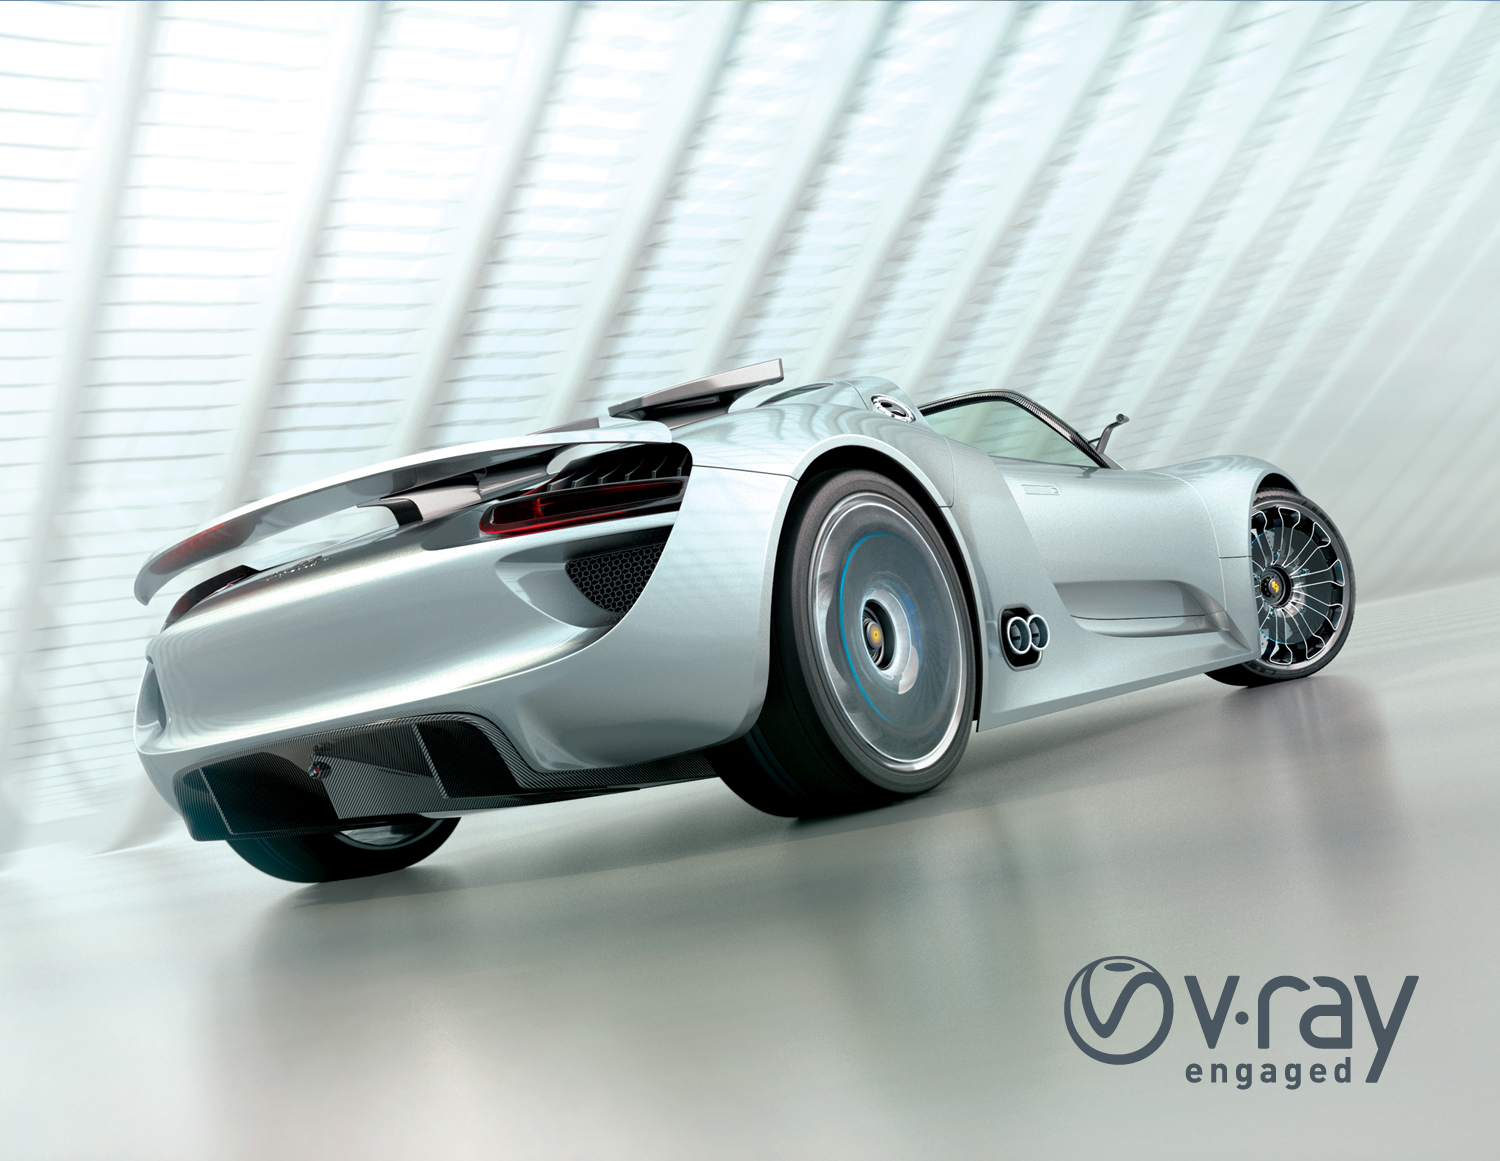 v-ray autoproduct design